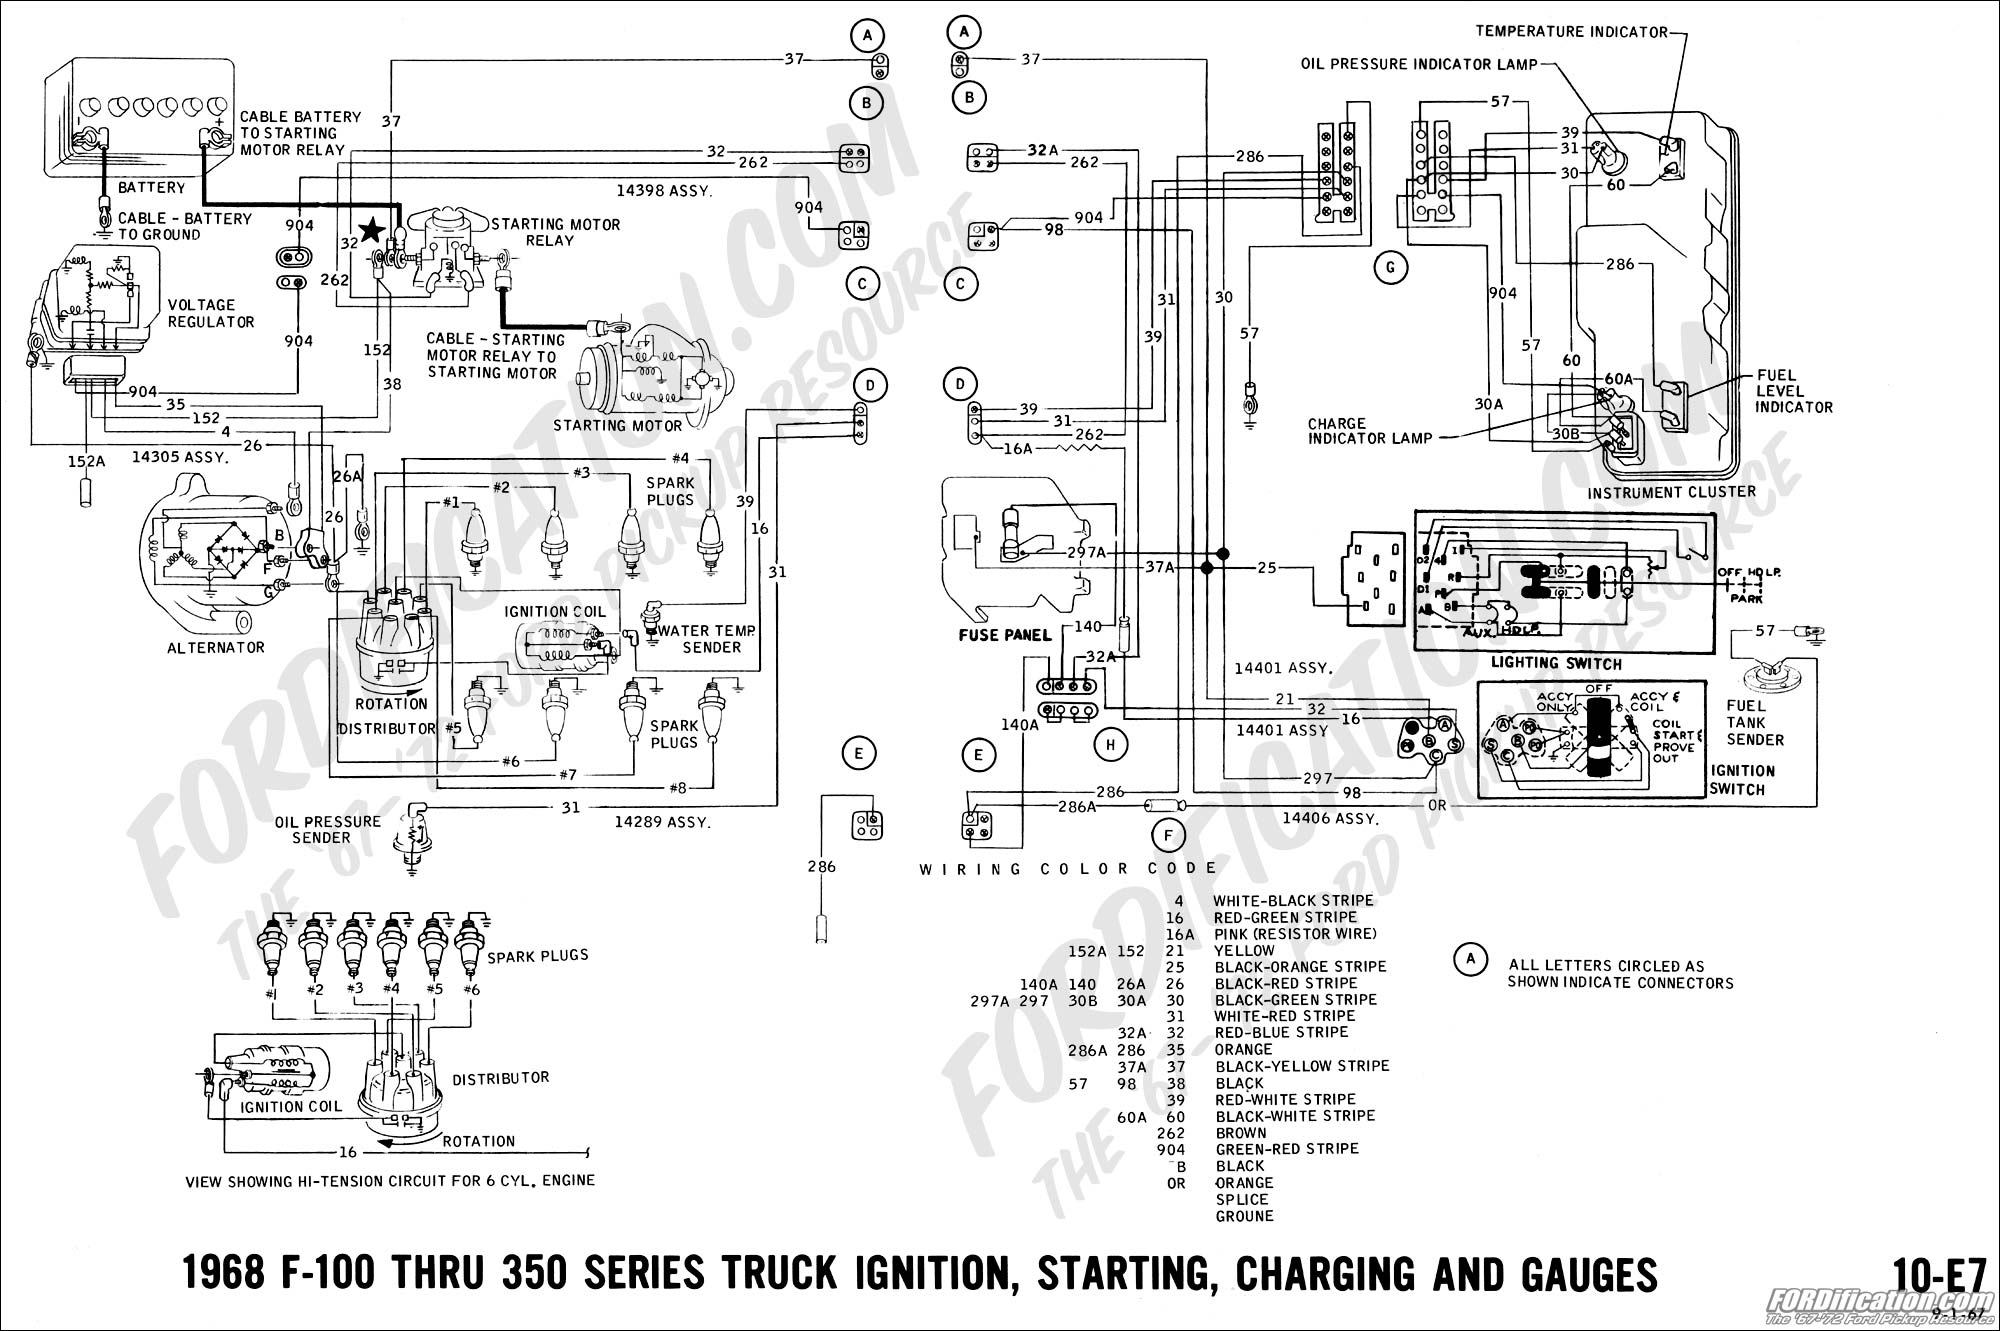 Incredible 1968 Ford Truck Wiring Diagram Wiring Diagram Data Schema Wiring Cloud Hisonuggs Outletorg